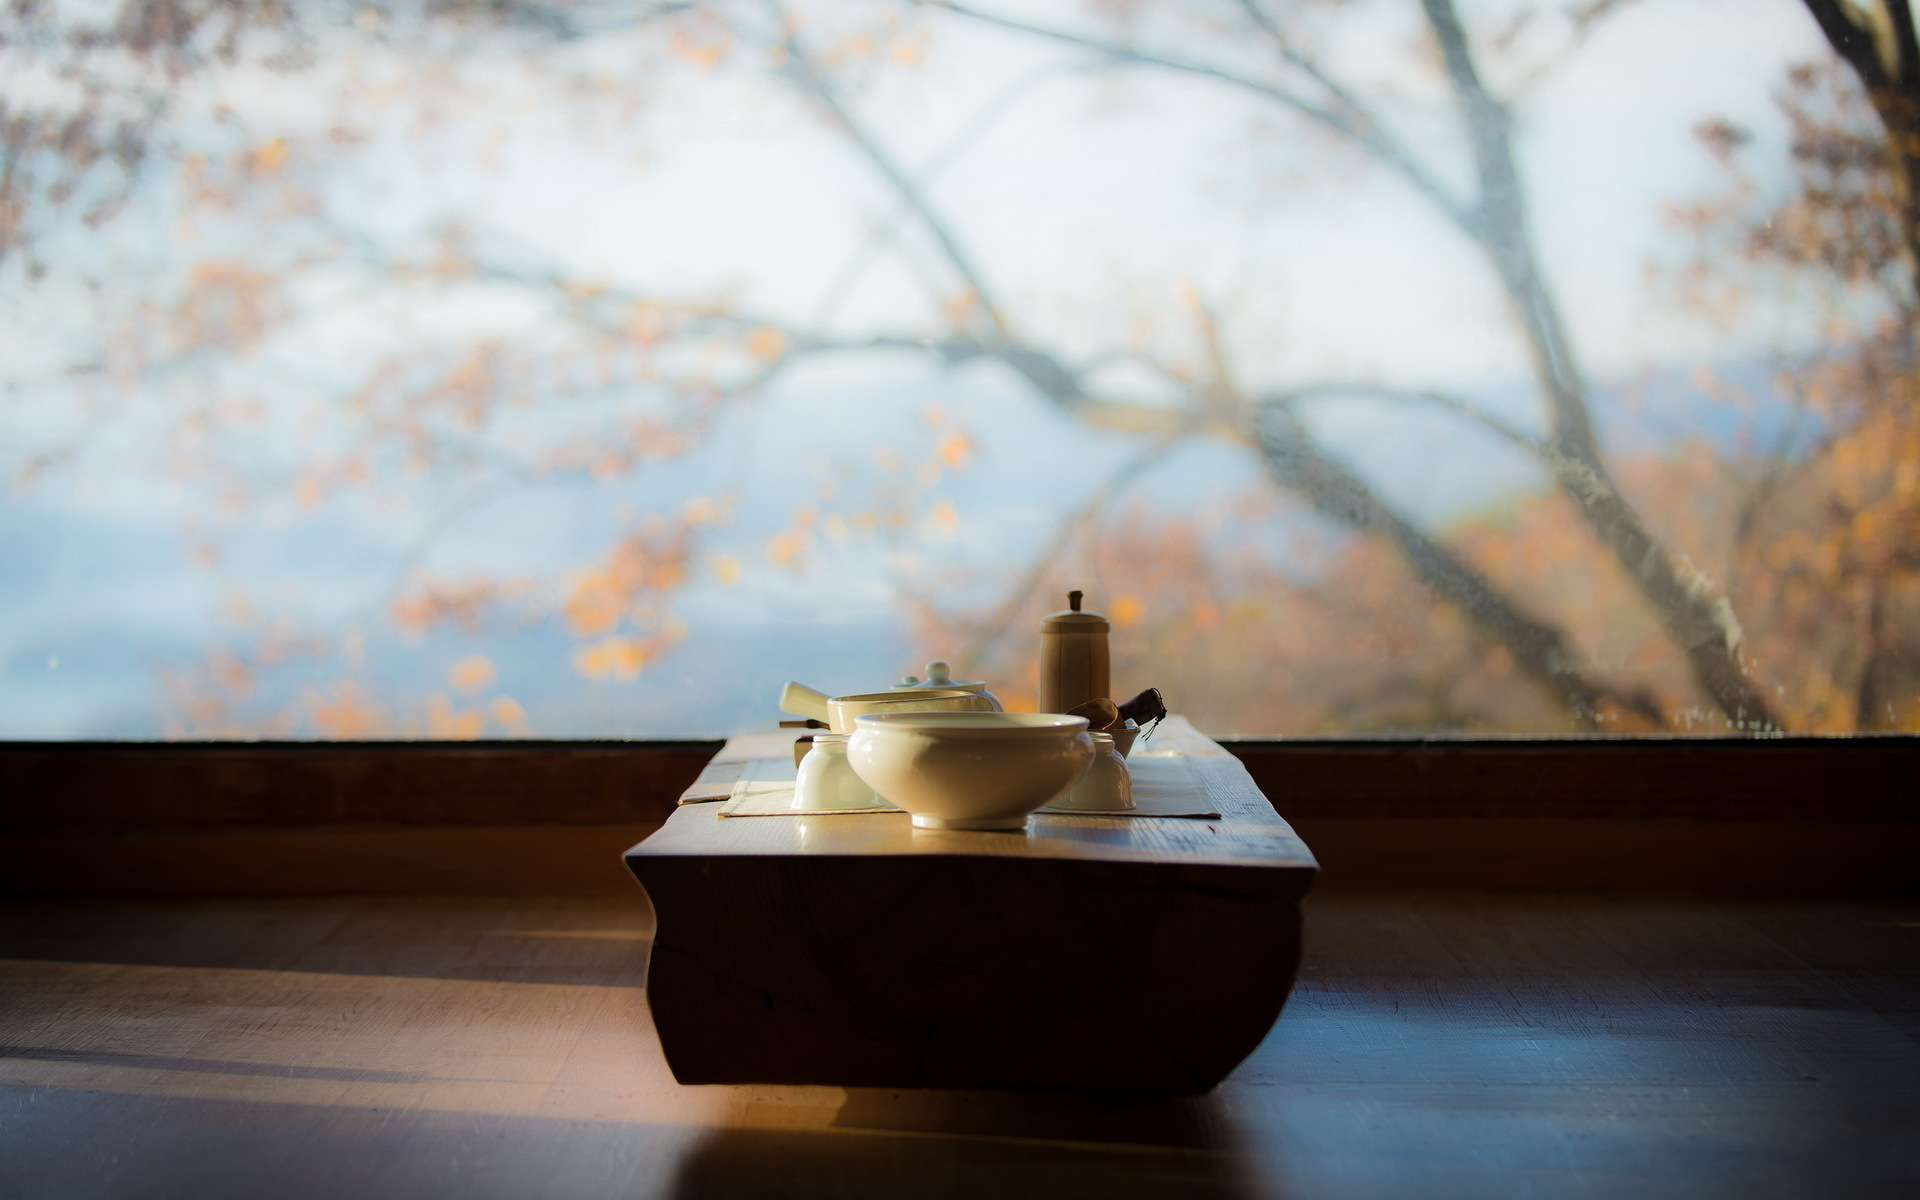 Autumn morning tea table, Fujian Province, China